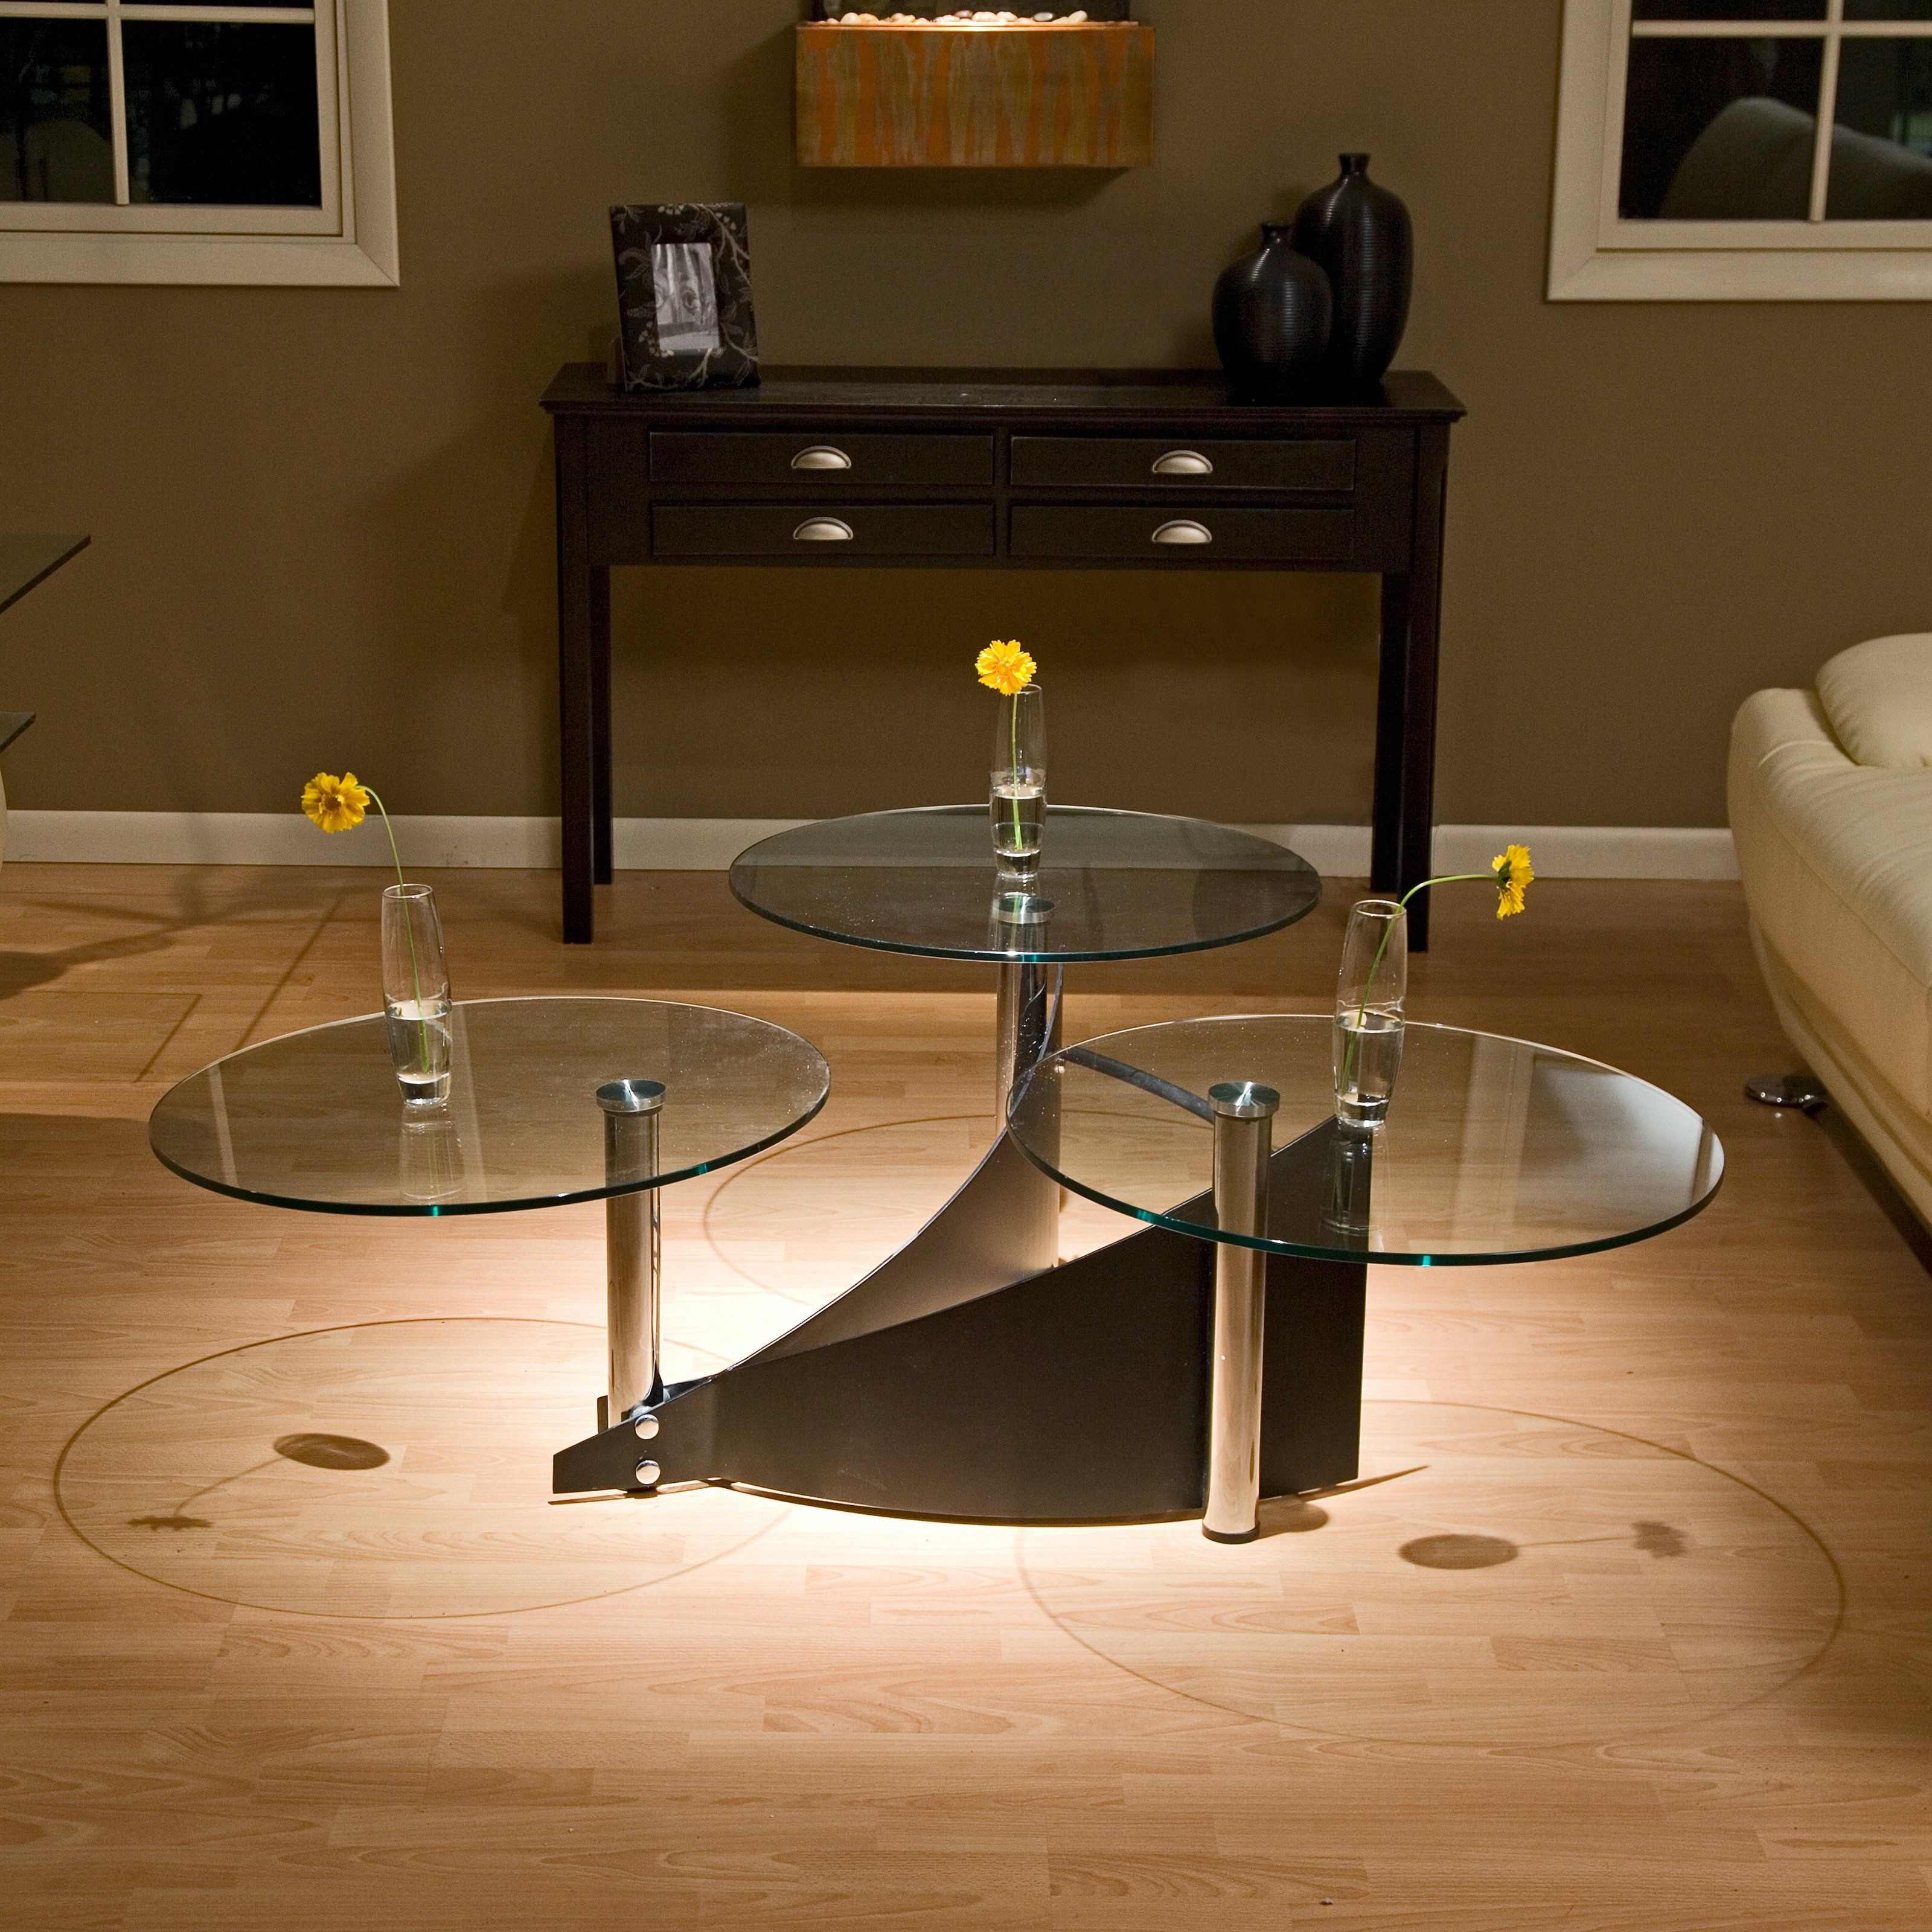 3 Way Motion Round Glass Coffee Table Www Hayneedle Com Round Glass Coffee Table Round Glass Table Coffee Table [ 3200 x 3200 Pixel ]